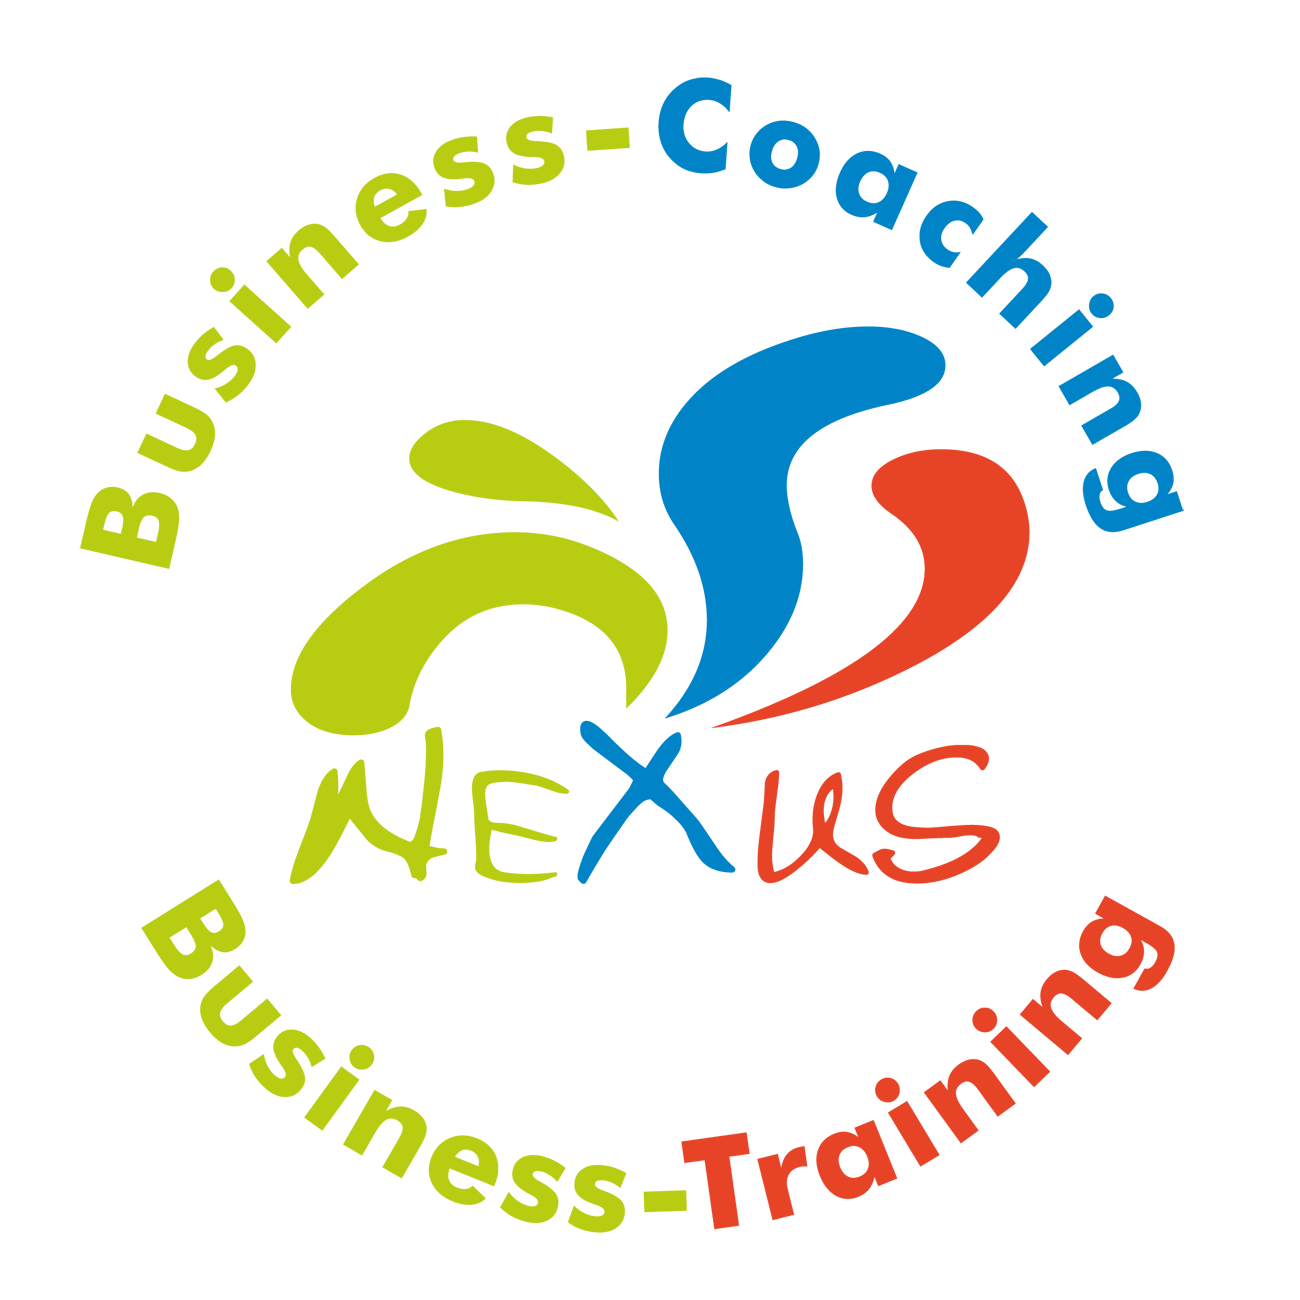 Business Coaching, Business-Einzelcoaching, Business-Training, Mannheim, Heidelberg, Ludwigshafen, Karlsruhe, Heilbronn, Mainz, Wiesbaden, Frankfurt, Offenbach, Hanau, Darmstadt, Kaiserslautern, Saarbrürcken, Weinheim, Offenburg, Freiburg, Walldorf, Baden-Baden